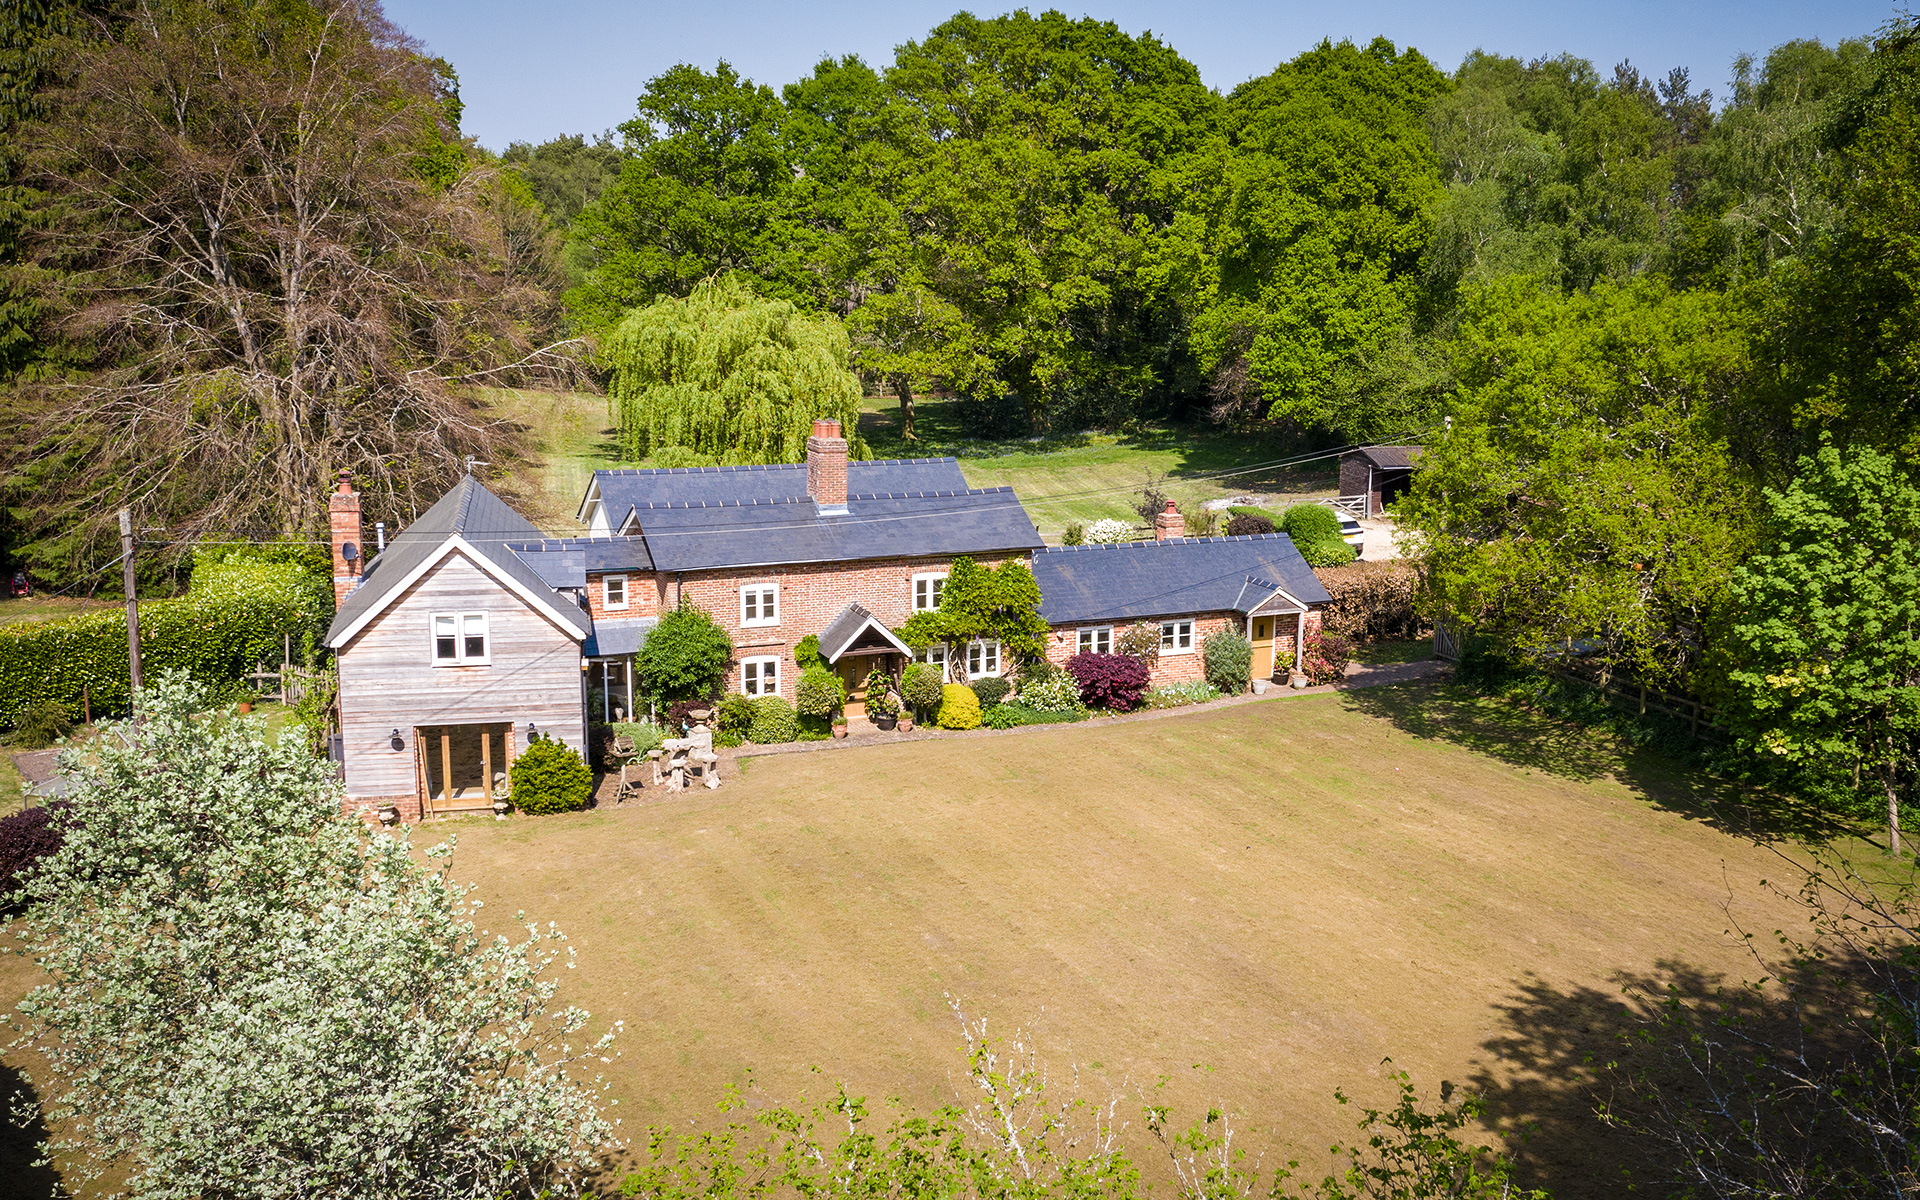 https://aerialview.info/wp-content/uploads/2020/09/estateAgent_willowhouse.jpg